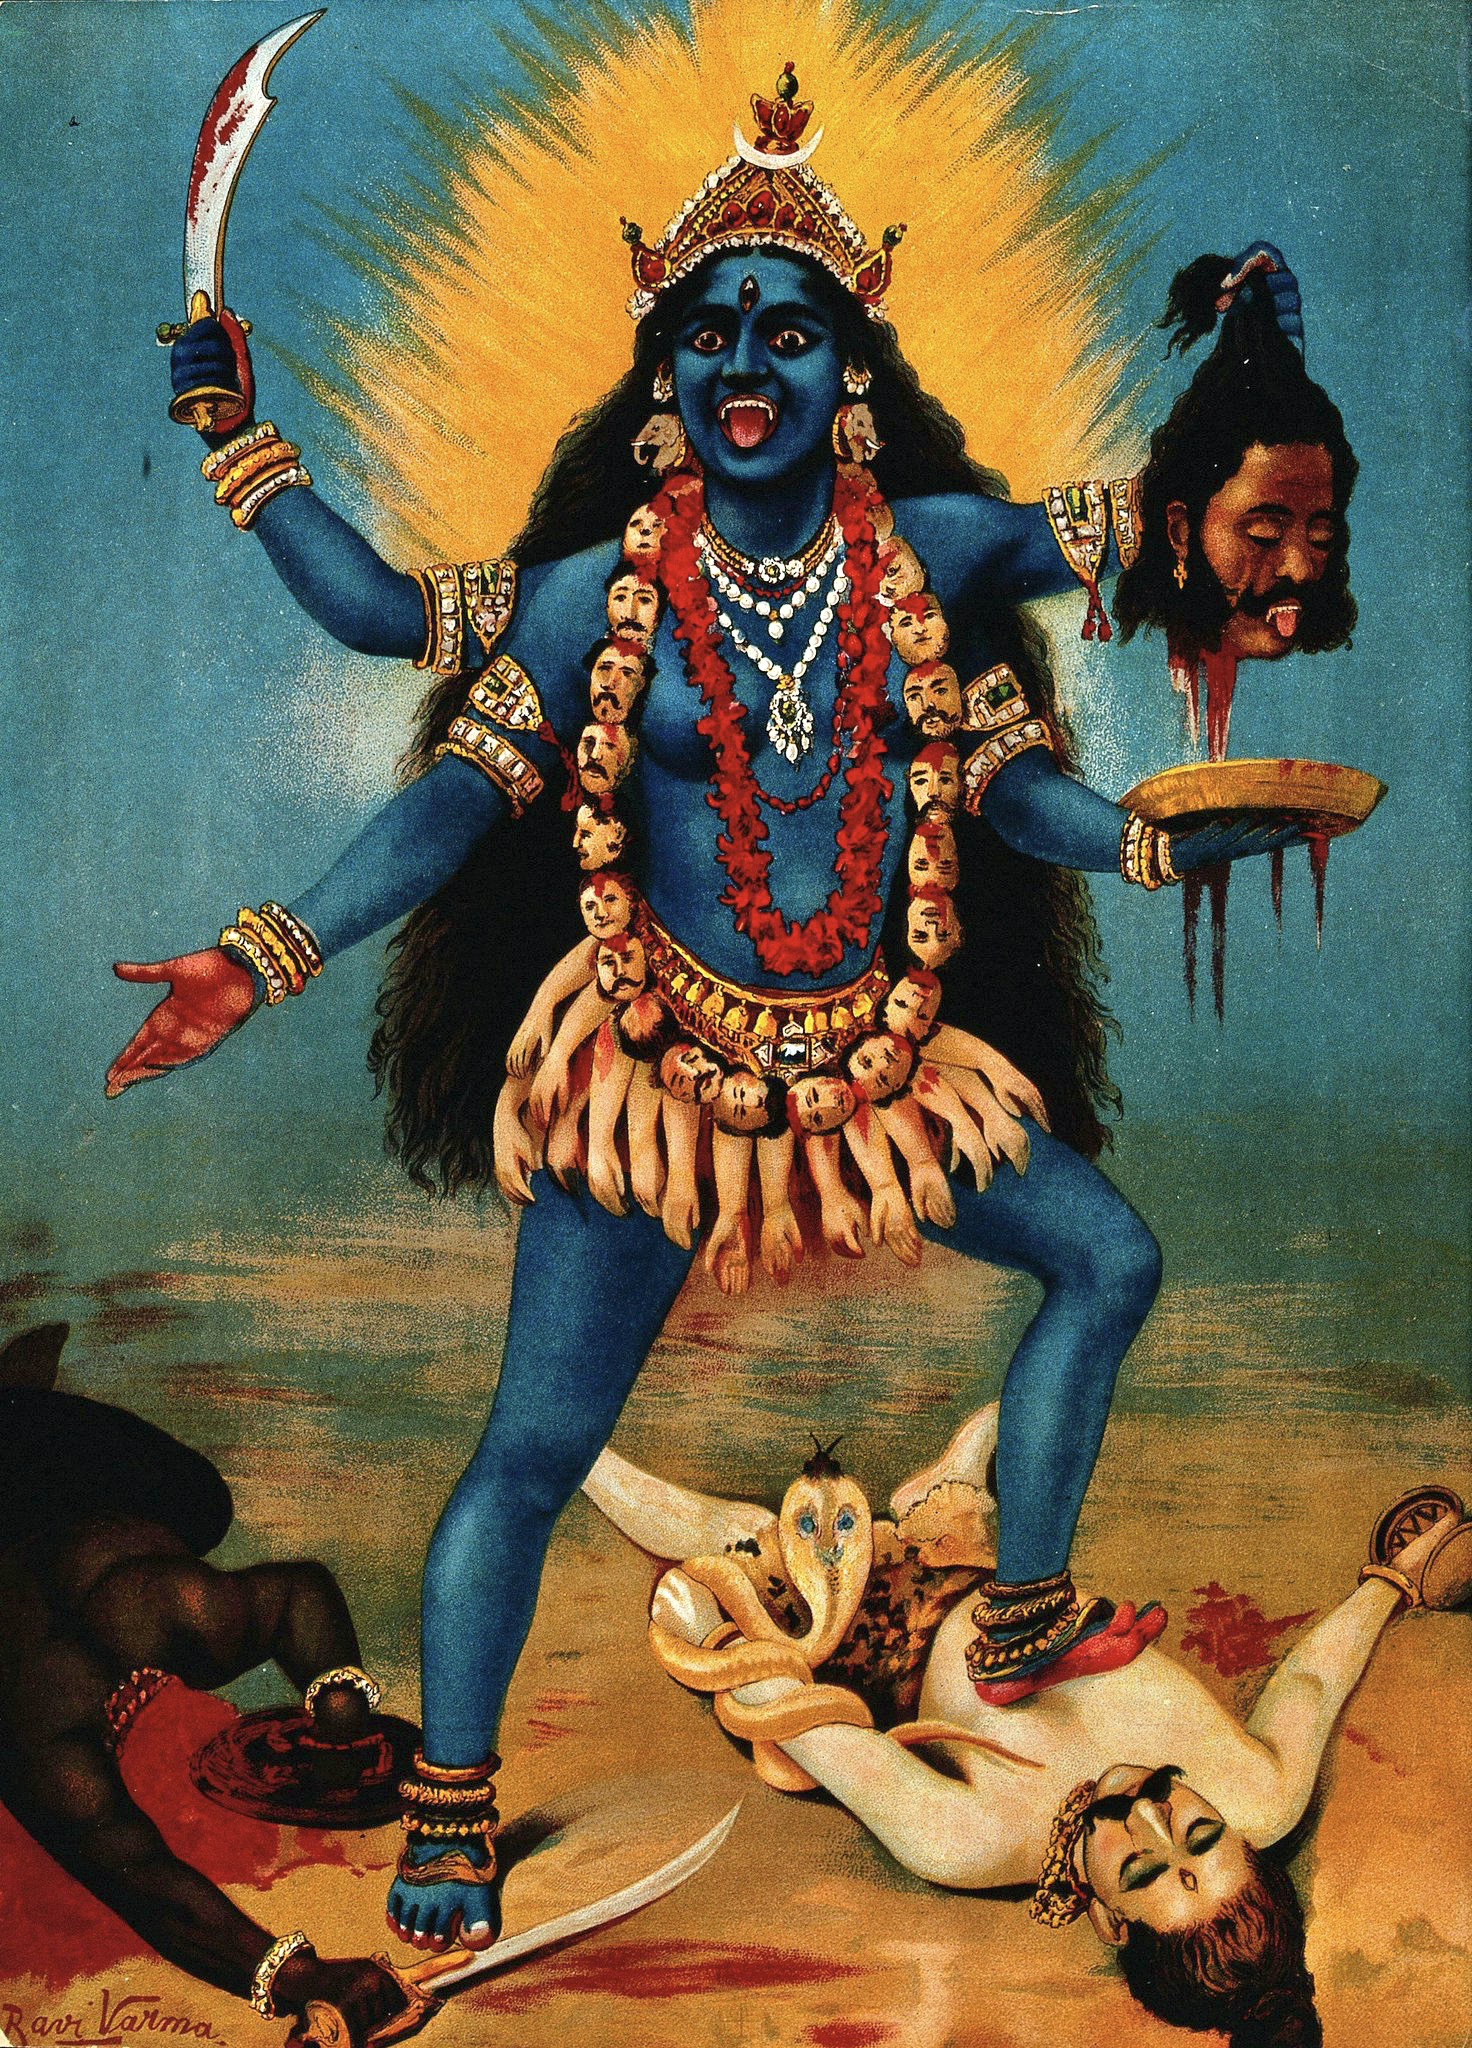 Kali | The Occult Revival